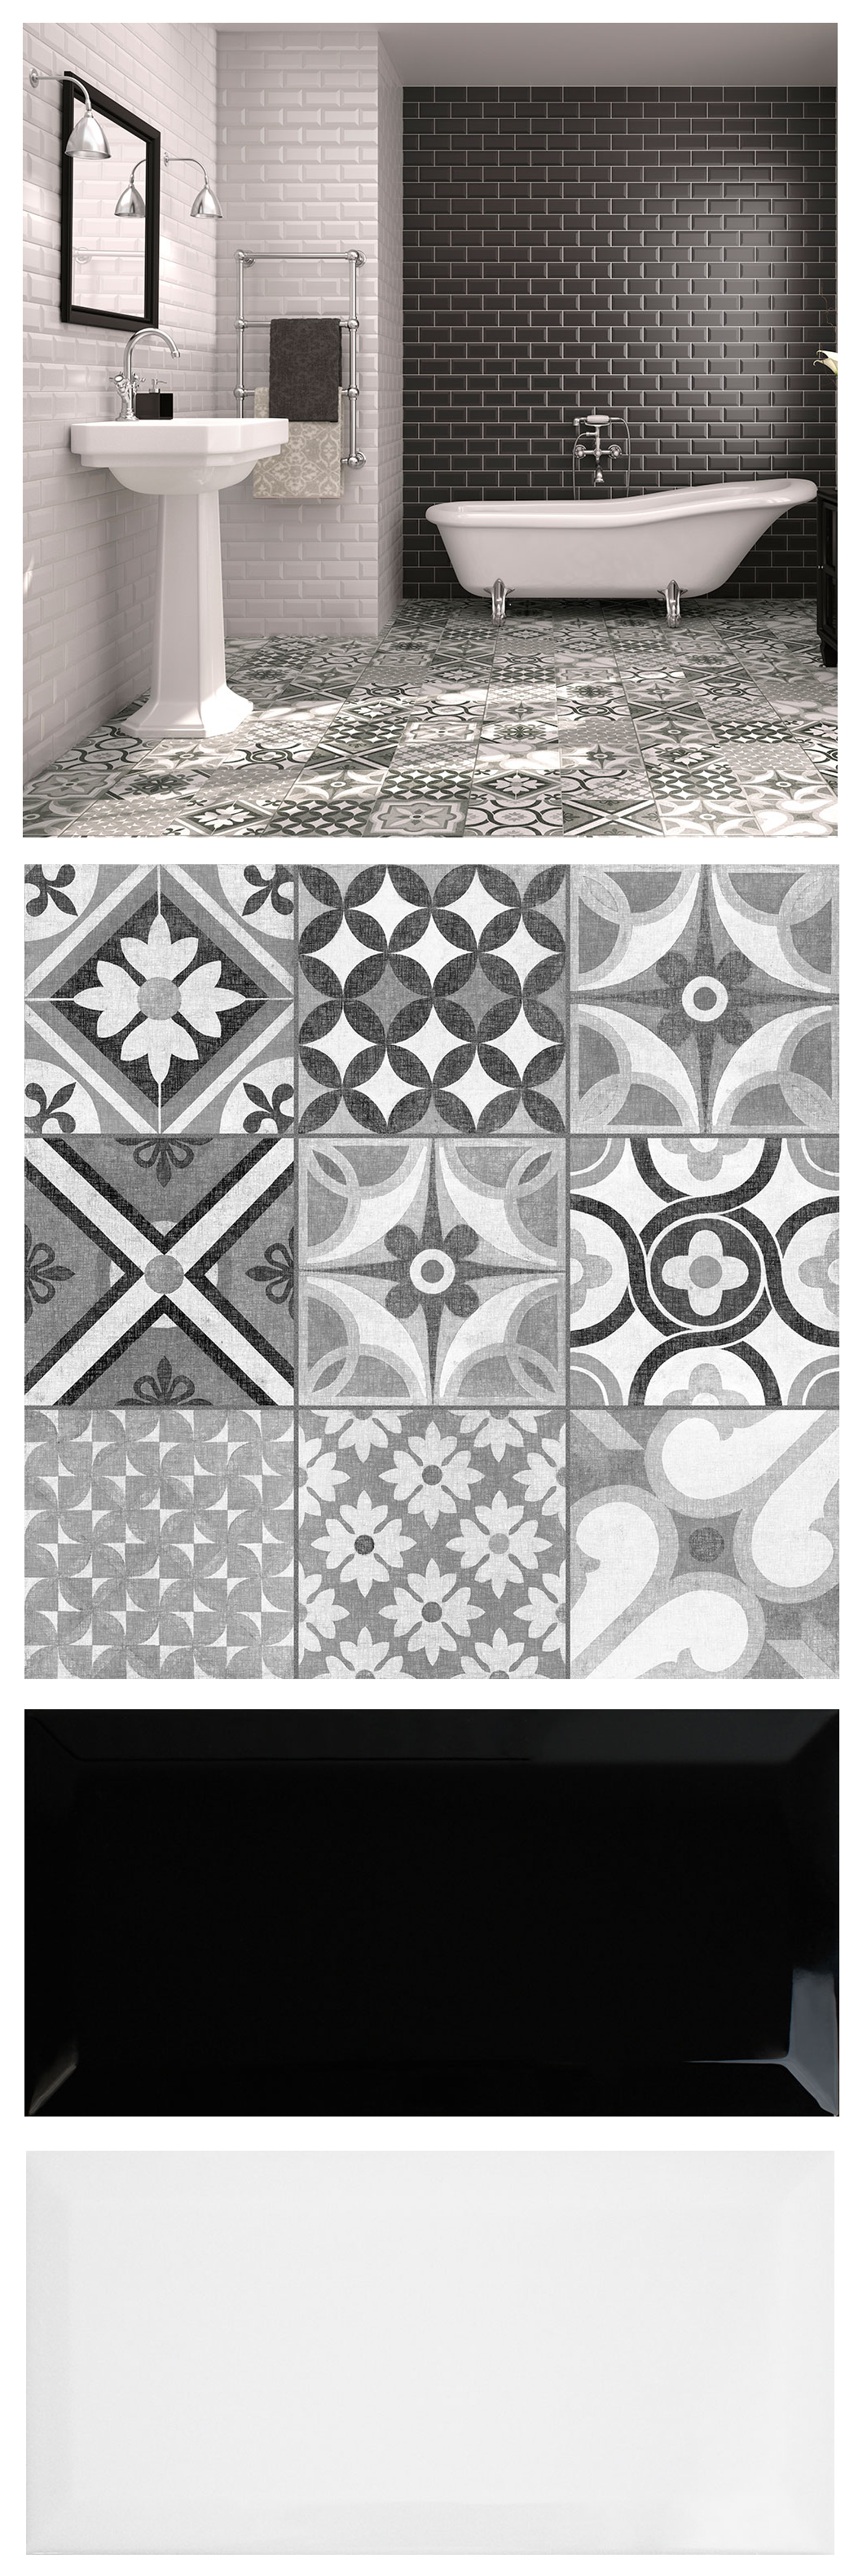 Mix Brick Shaped Metros And Patterned Zeinah Tiles For A Striking Monochrome Moroccan Mash Up In Bathroom Or Kitchen